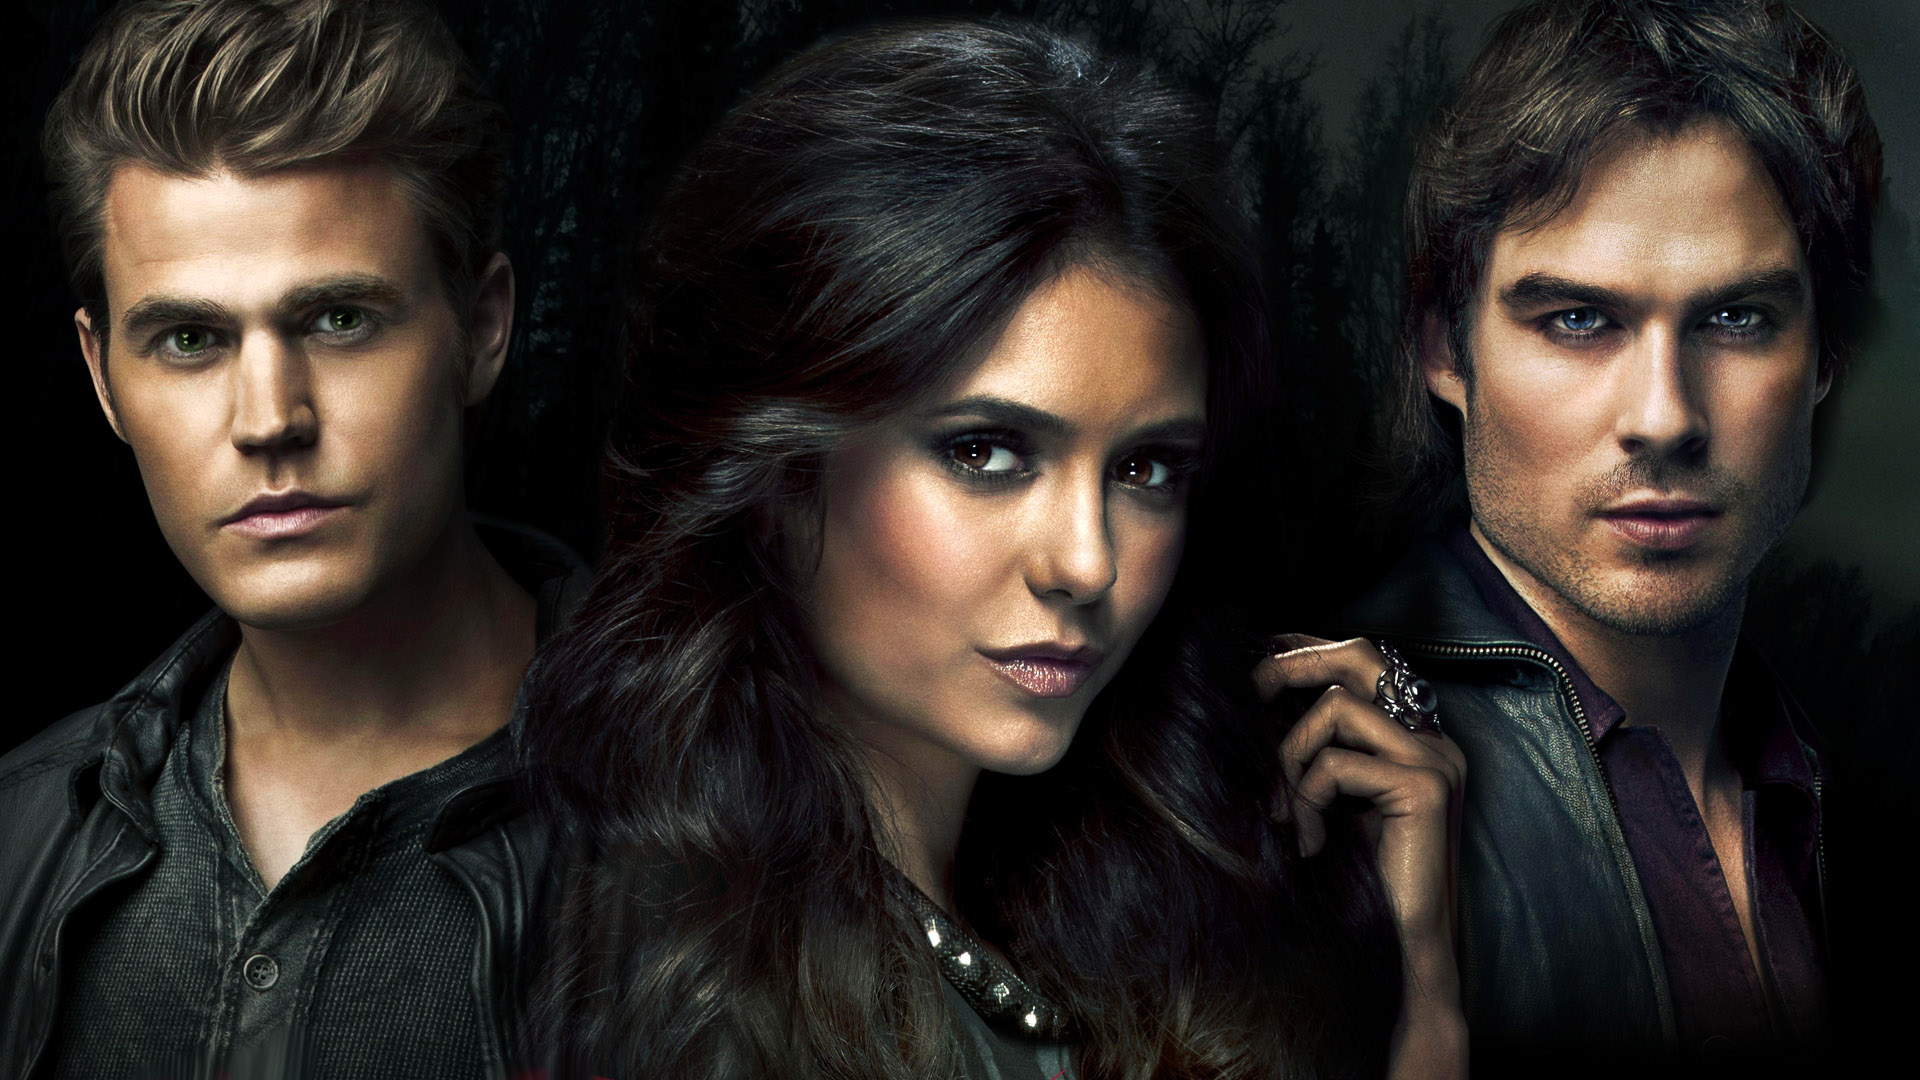 Fondos De Crónicas Vampiricas Wallpapers Hd Vampire Diaries